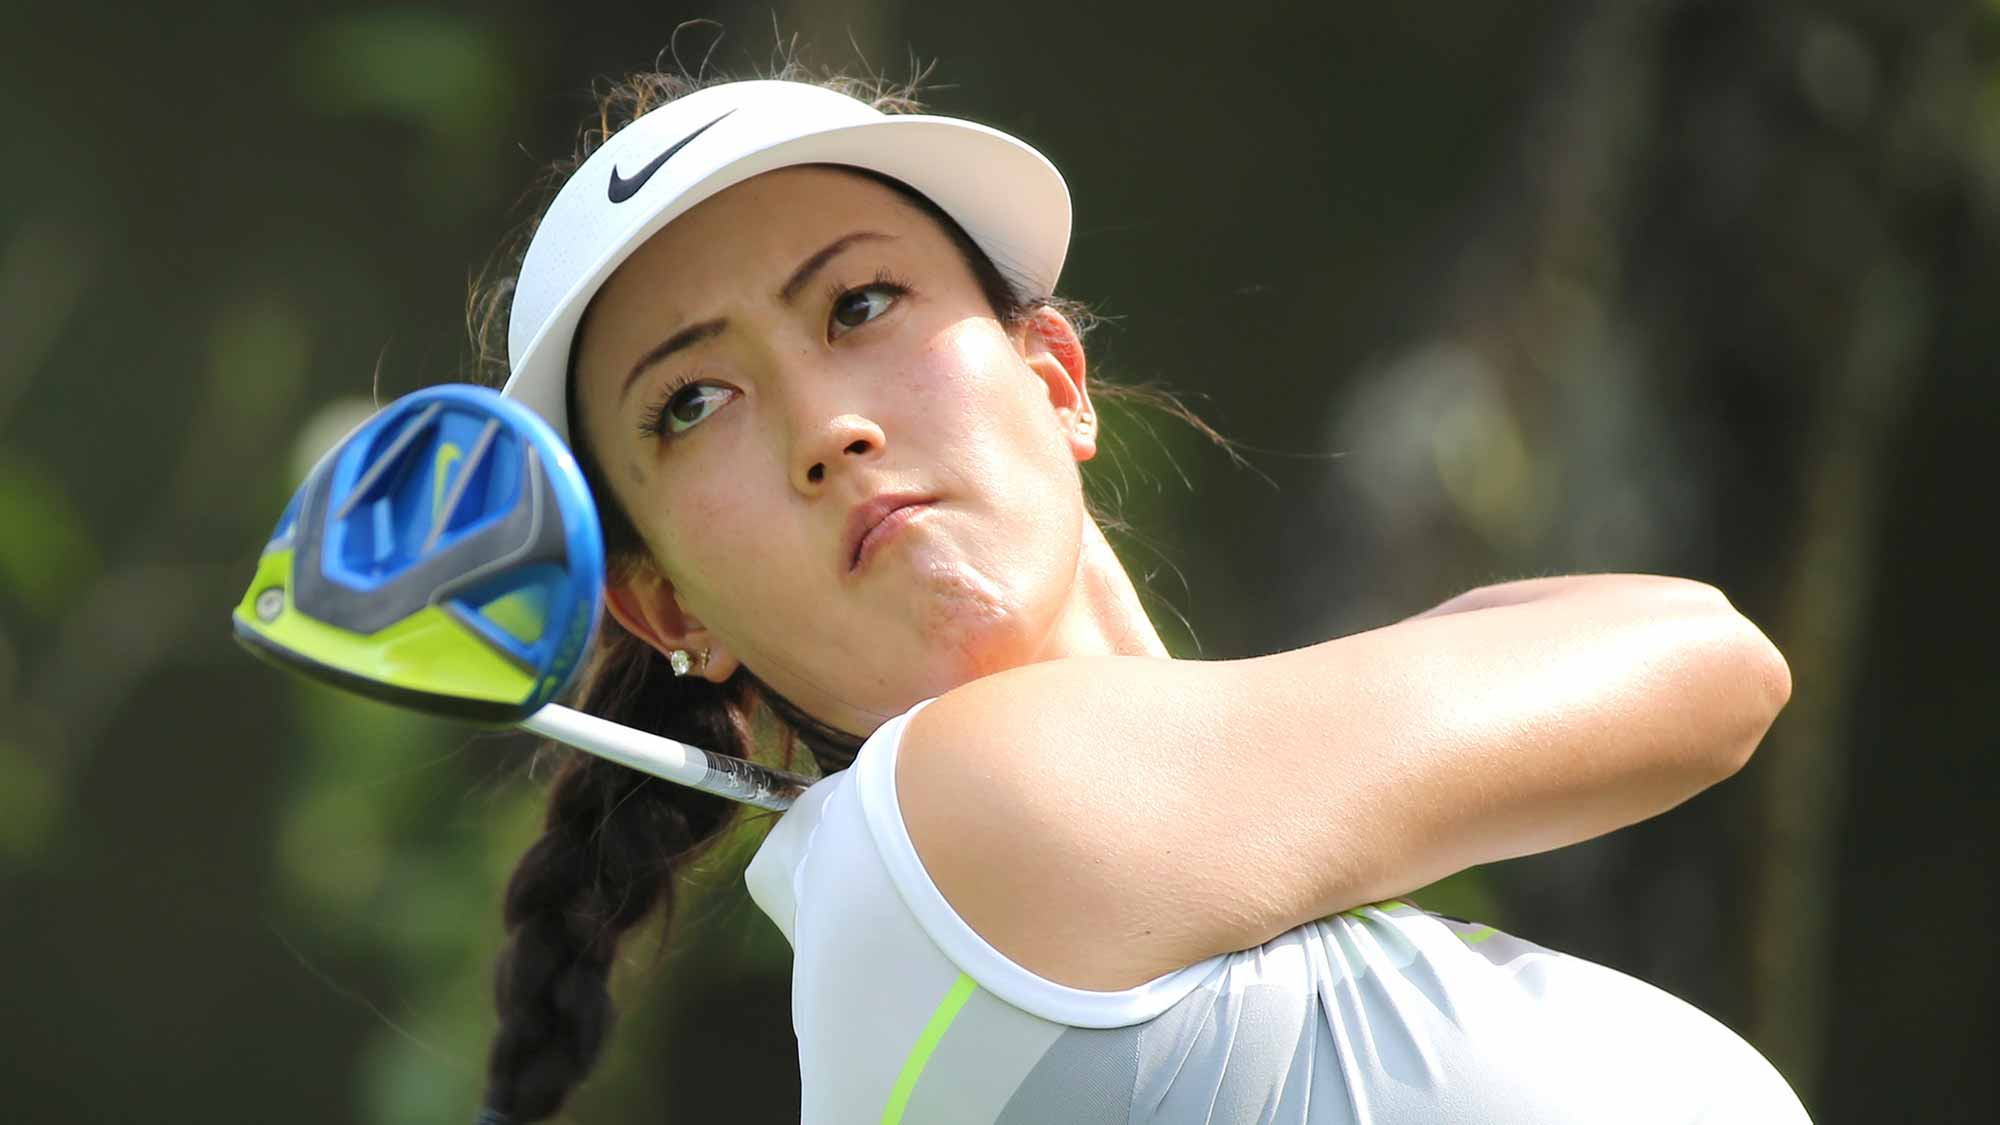 Michelle Wie Hits A Tee Shot During A Practice Round at Honda LPGA Thailand